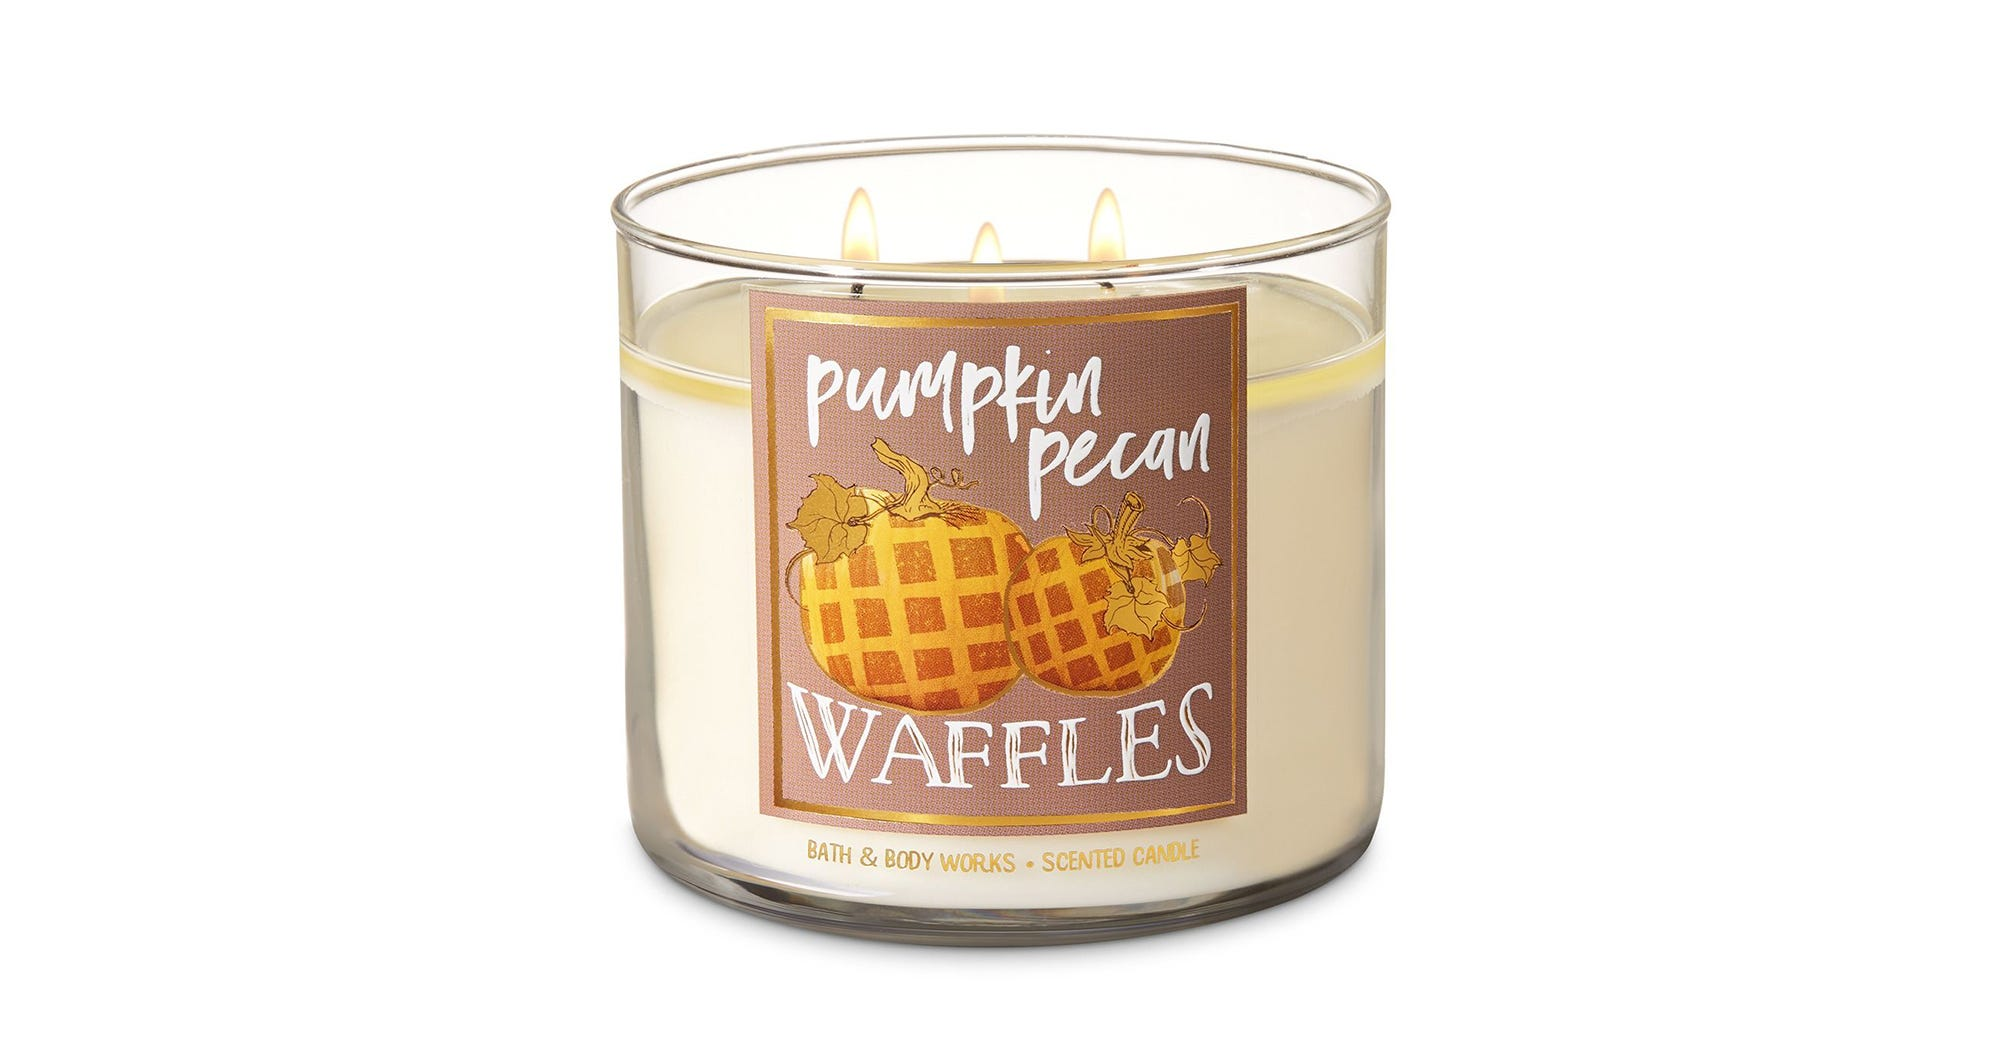 The Best Smelling 10 Bath Amp Body Works Candle By State